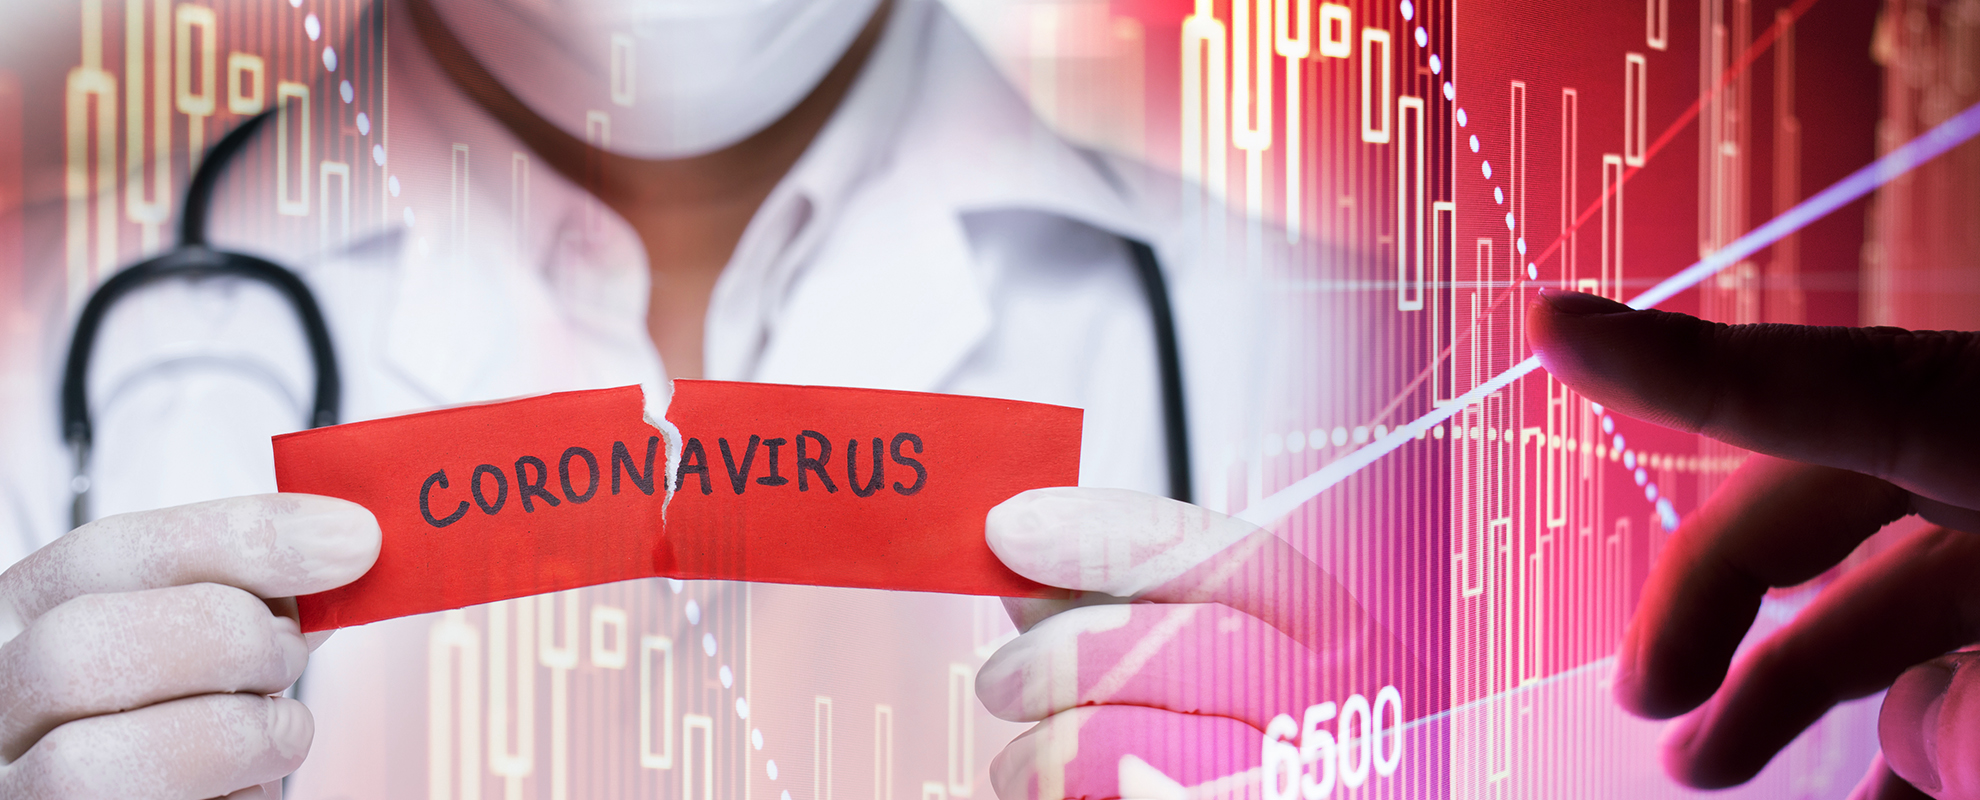 How does the Coronavirus affect the economy and financial markets?